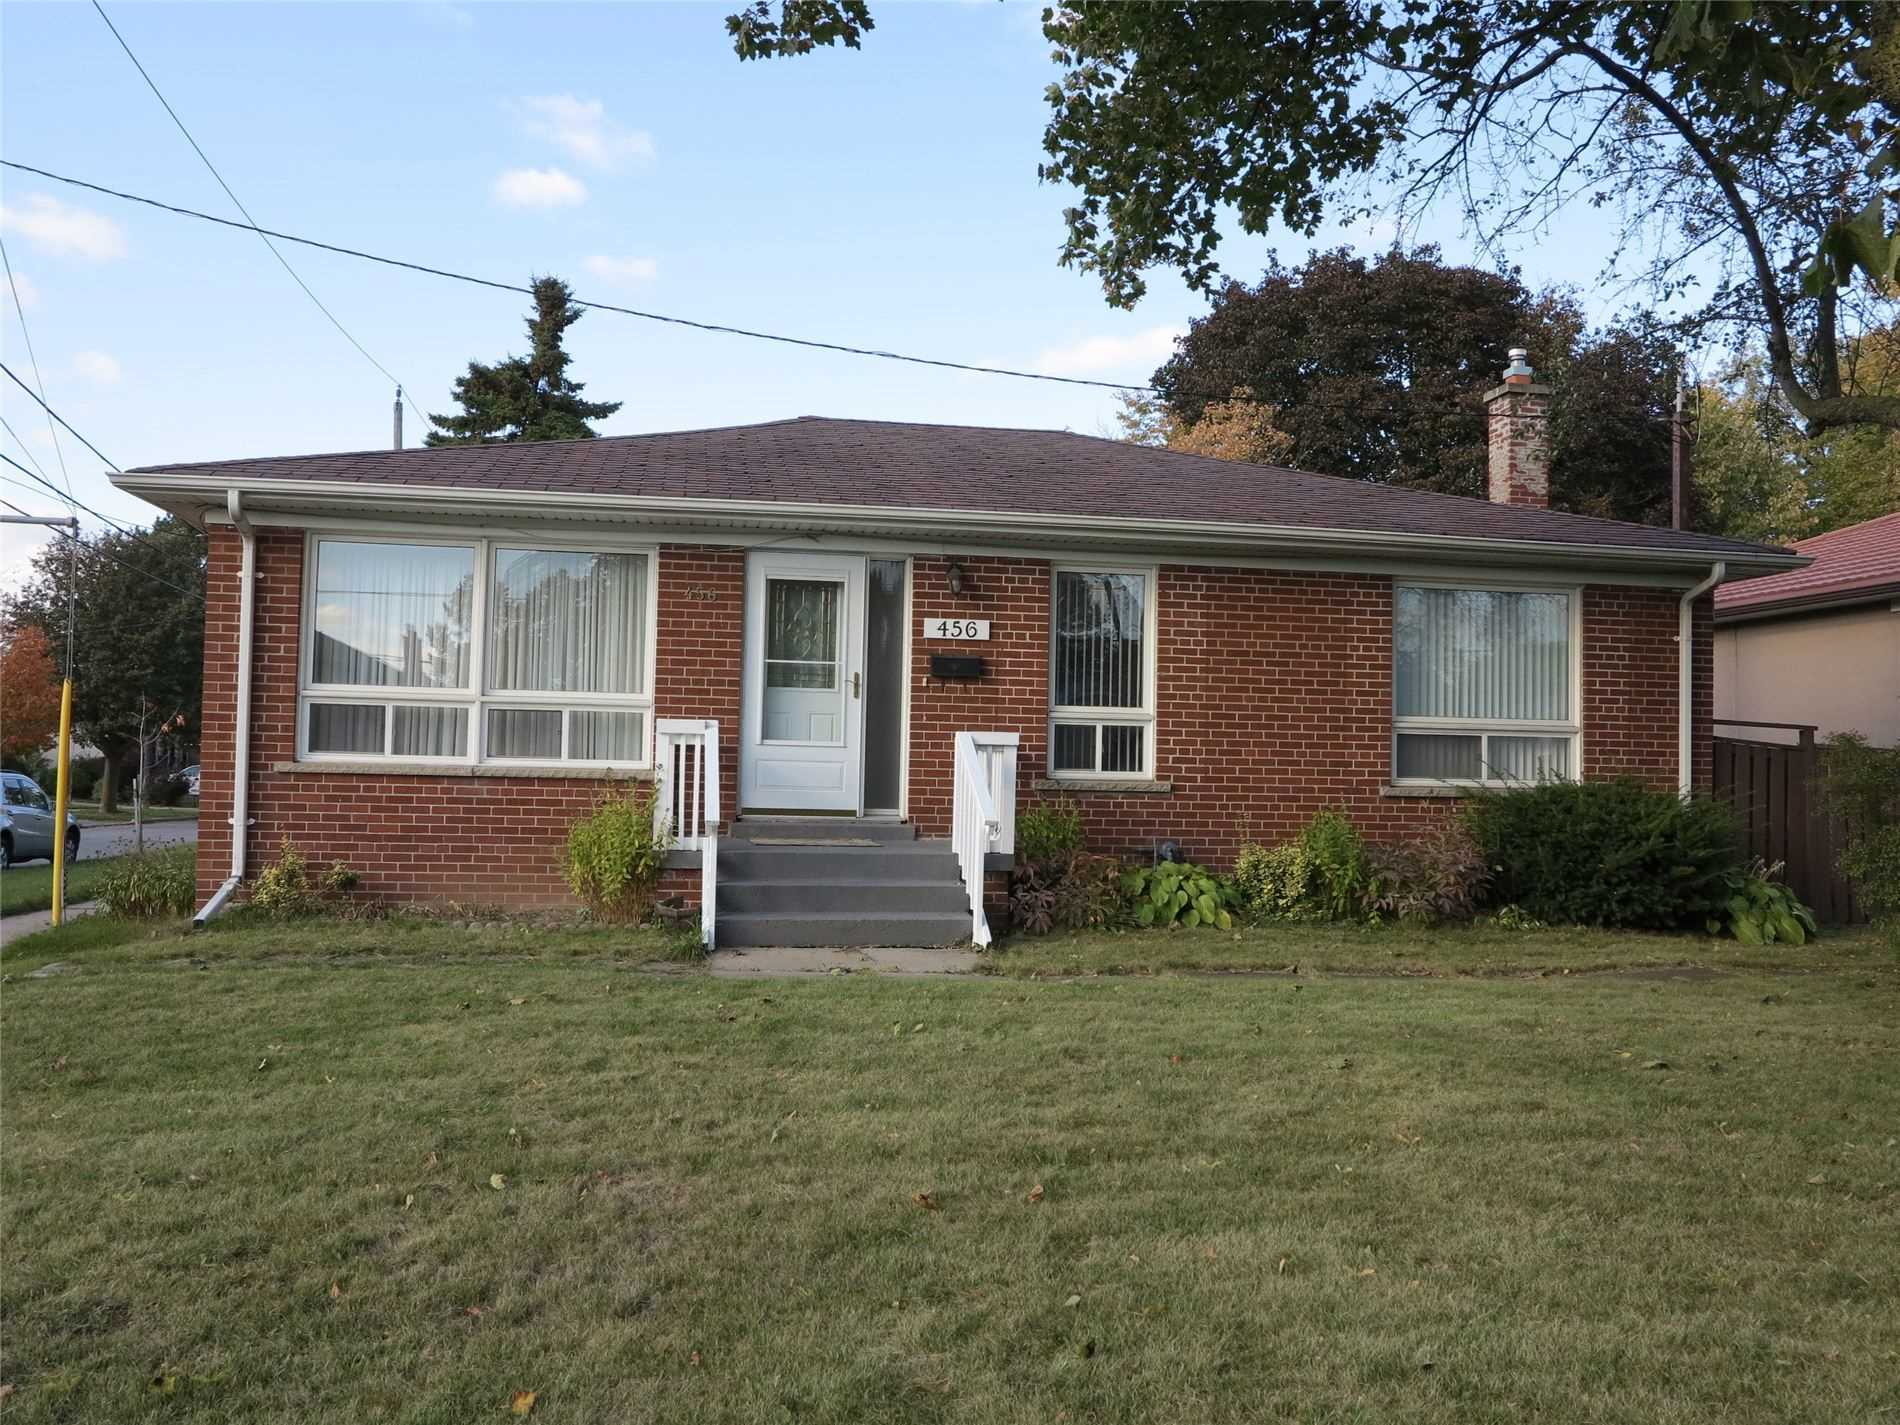 Image 1 of 30 showing inside of 3 Bedroom Detached Bungalow for Lease at 456 Drewry Ave, Toronto M2R2K7